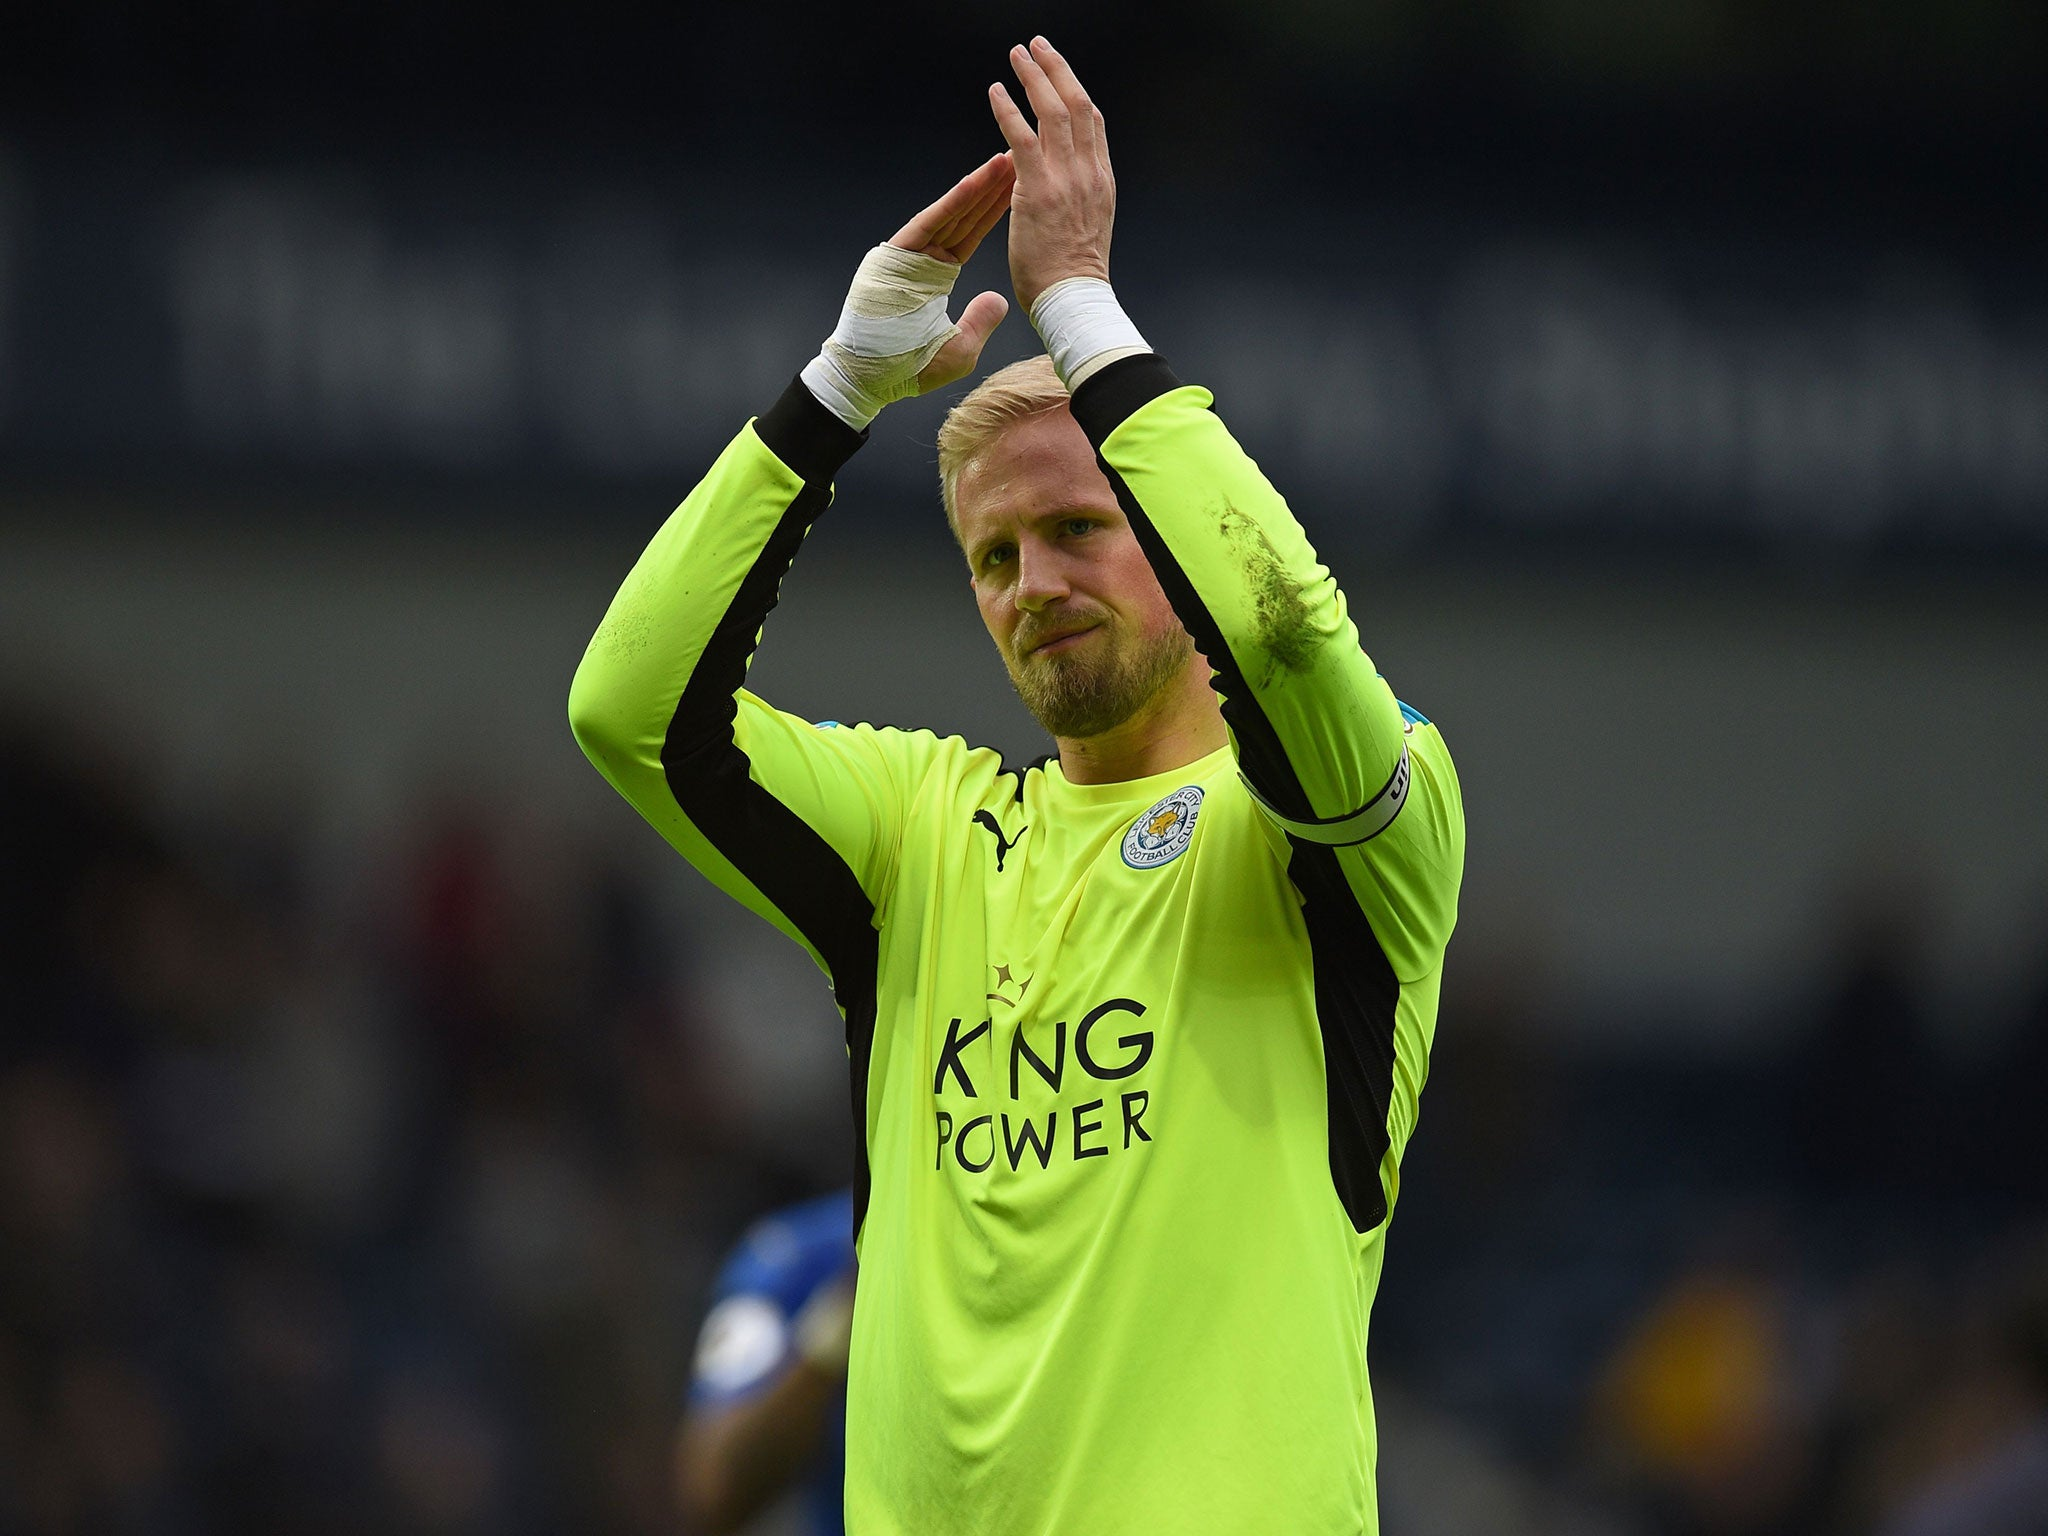 Kasper Schmeichel wants Champions League football with Leicester